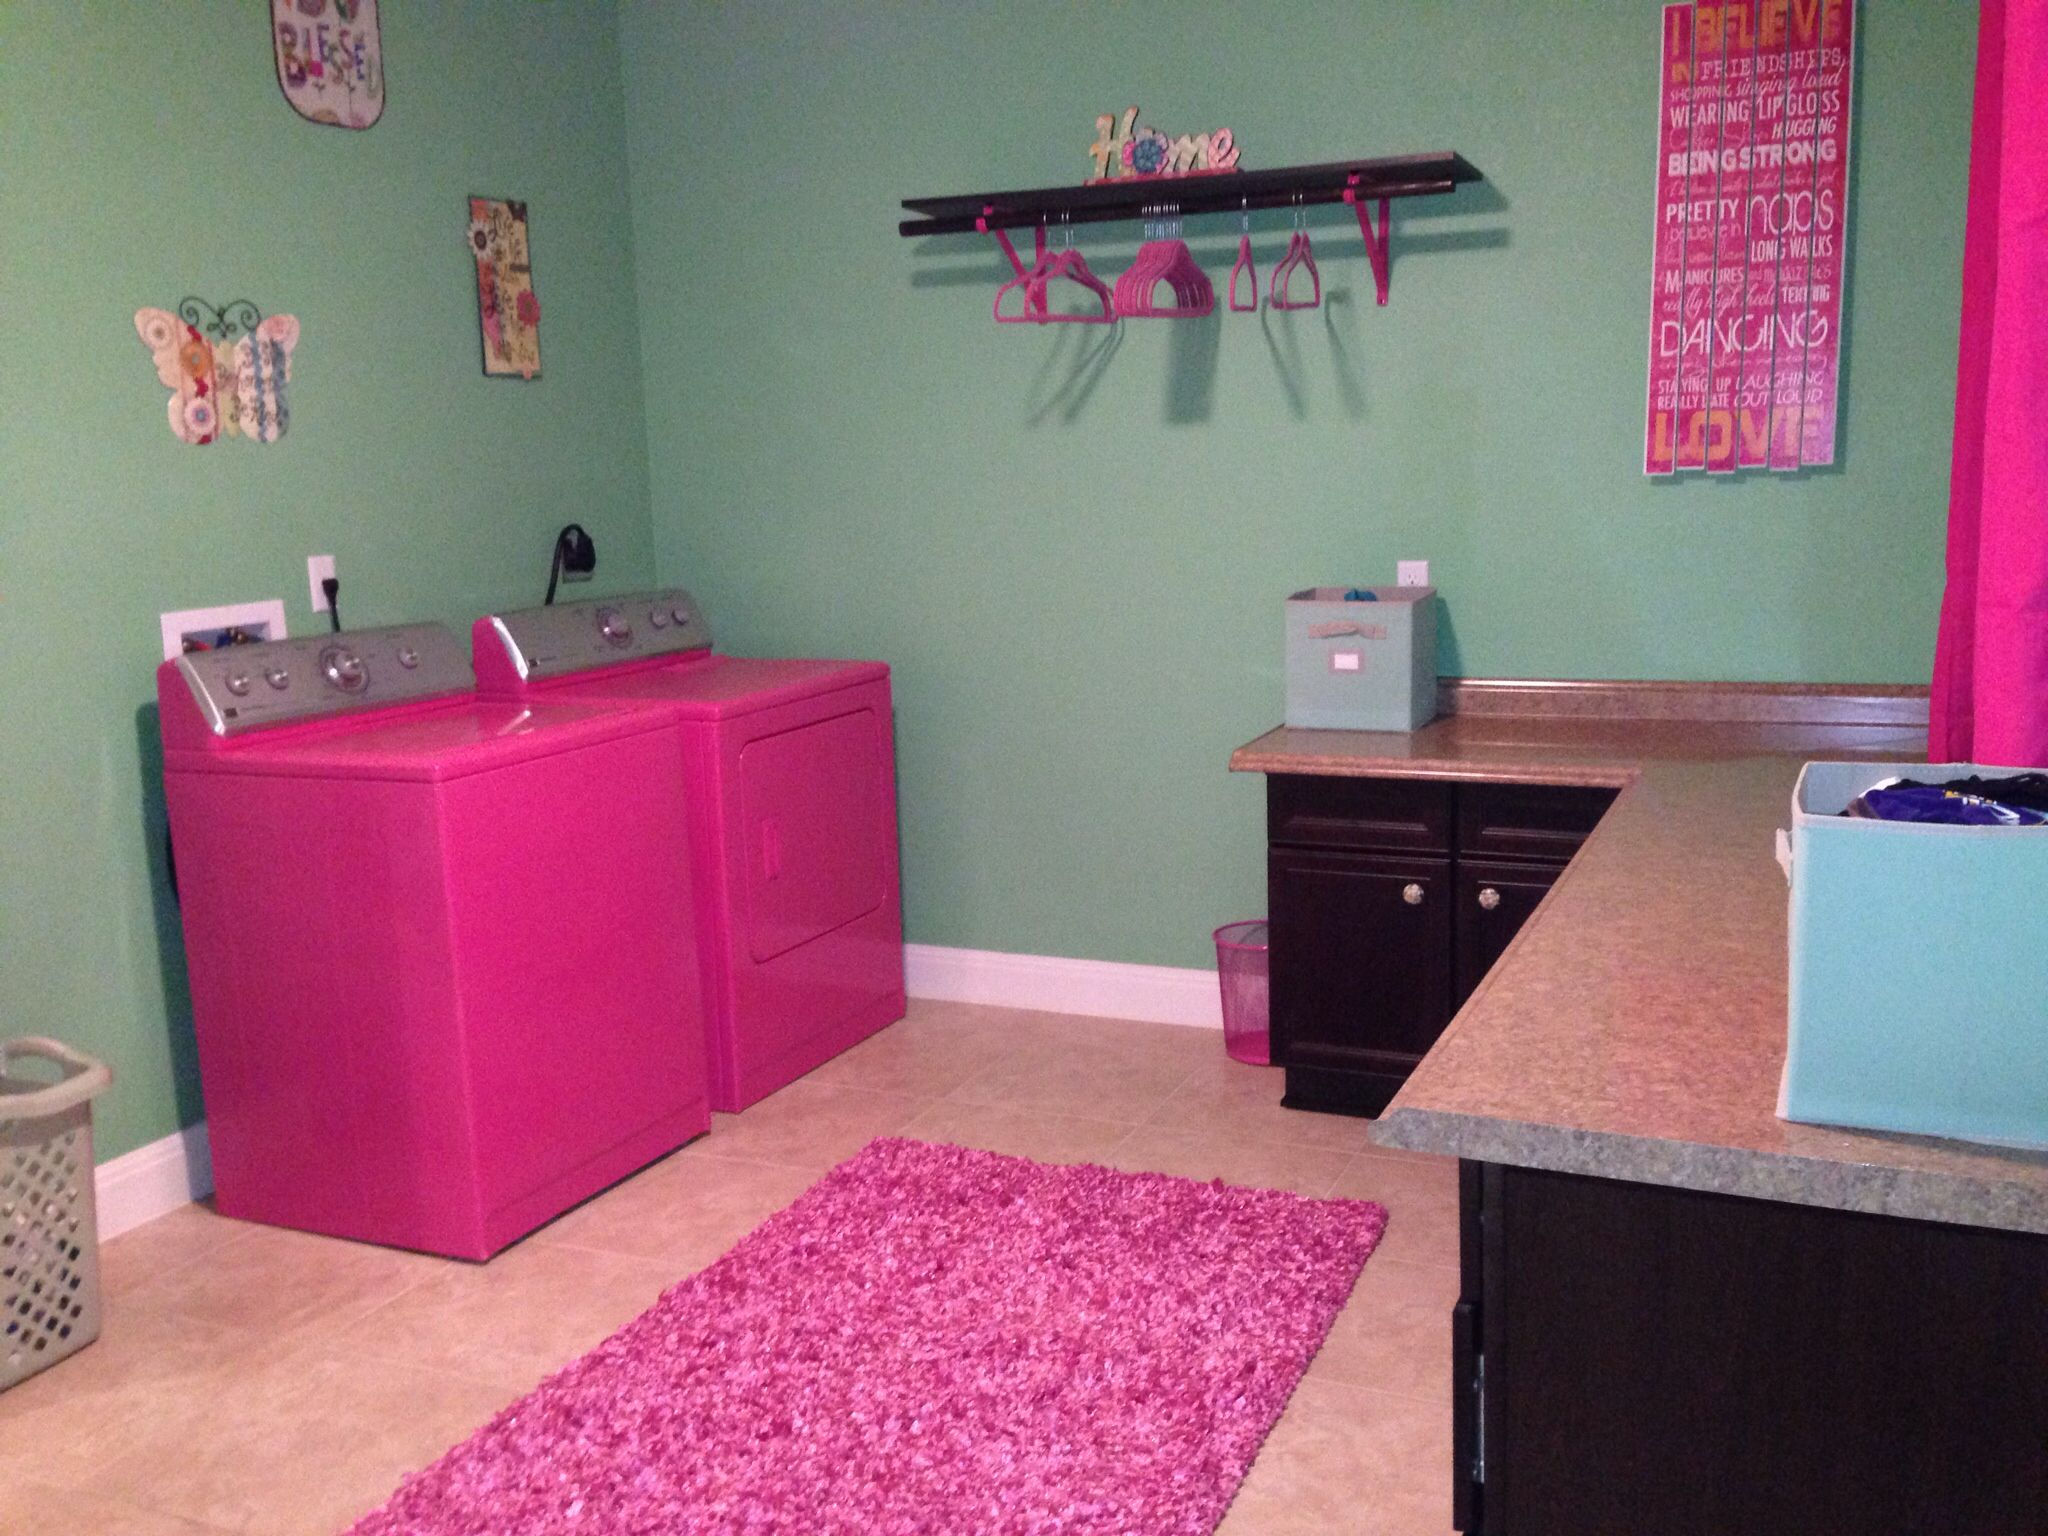 Pink And Green Laundry Room With Hot Pink Washer And Dryer Pink Laundry Rooms Laundry Room Inspiration Laundry Room Decor